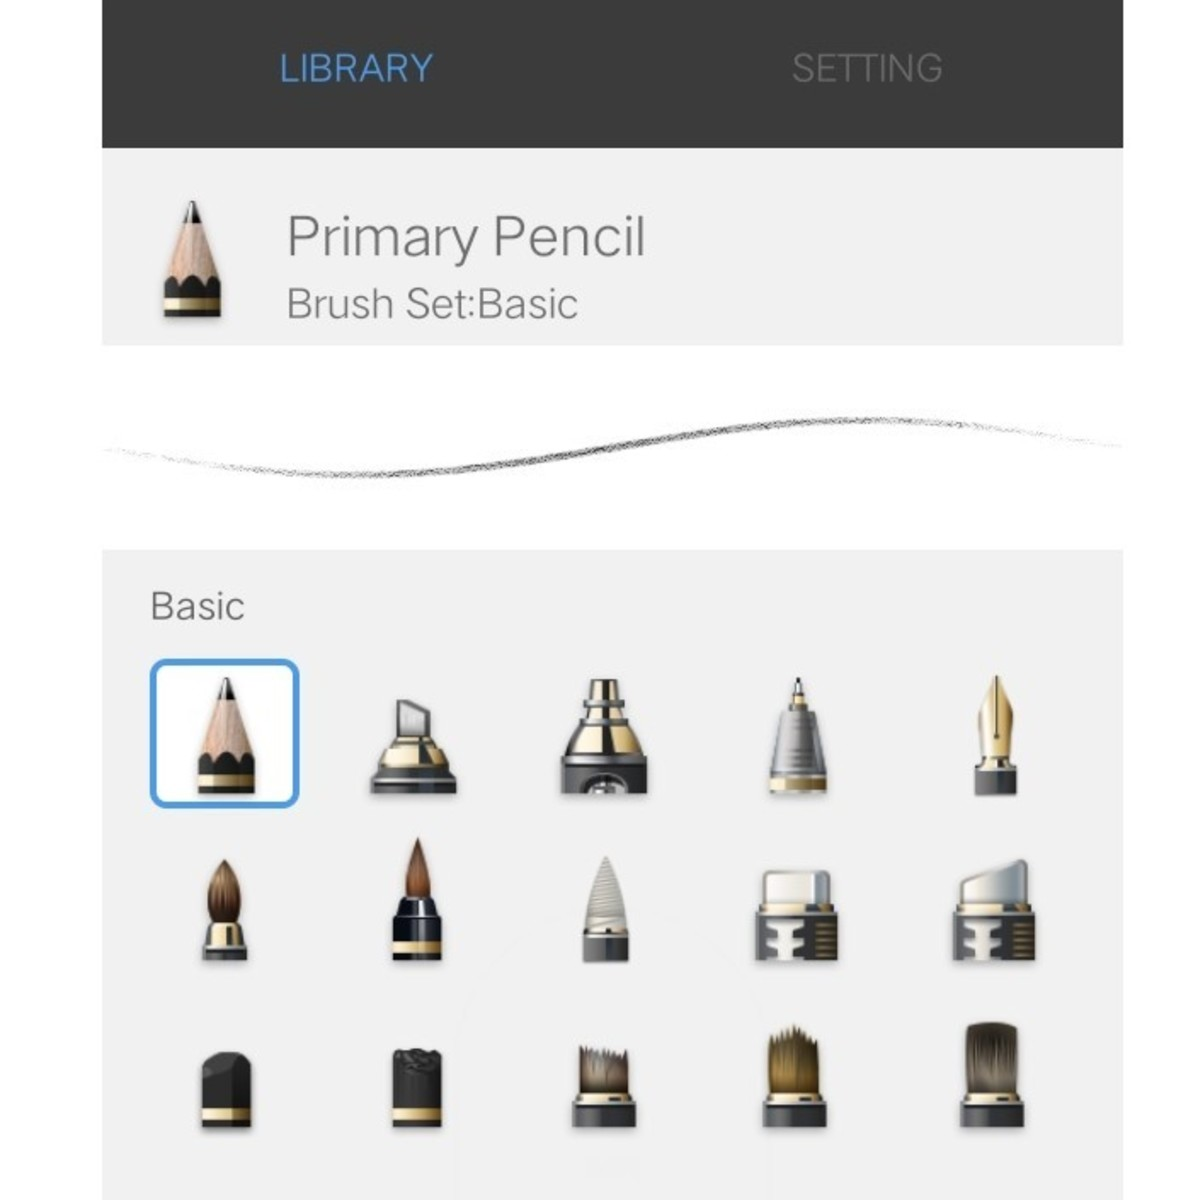 Primary pencil - often used for first layer sketches which will then be overwritten or erased once the work is done.